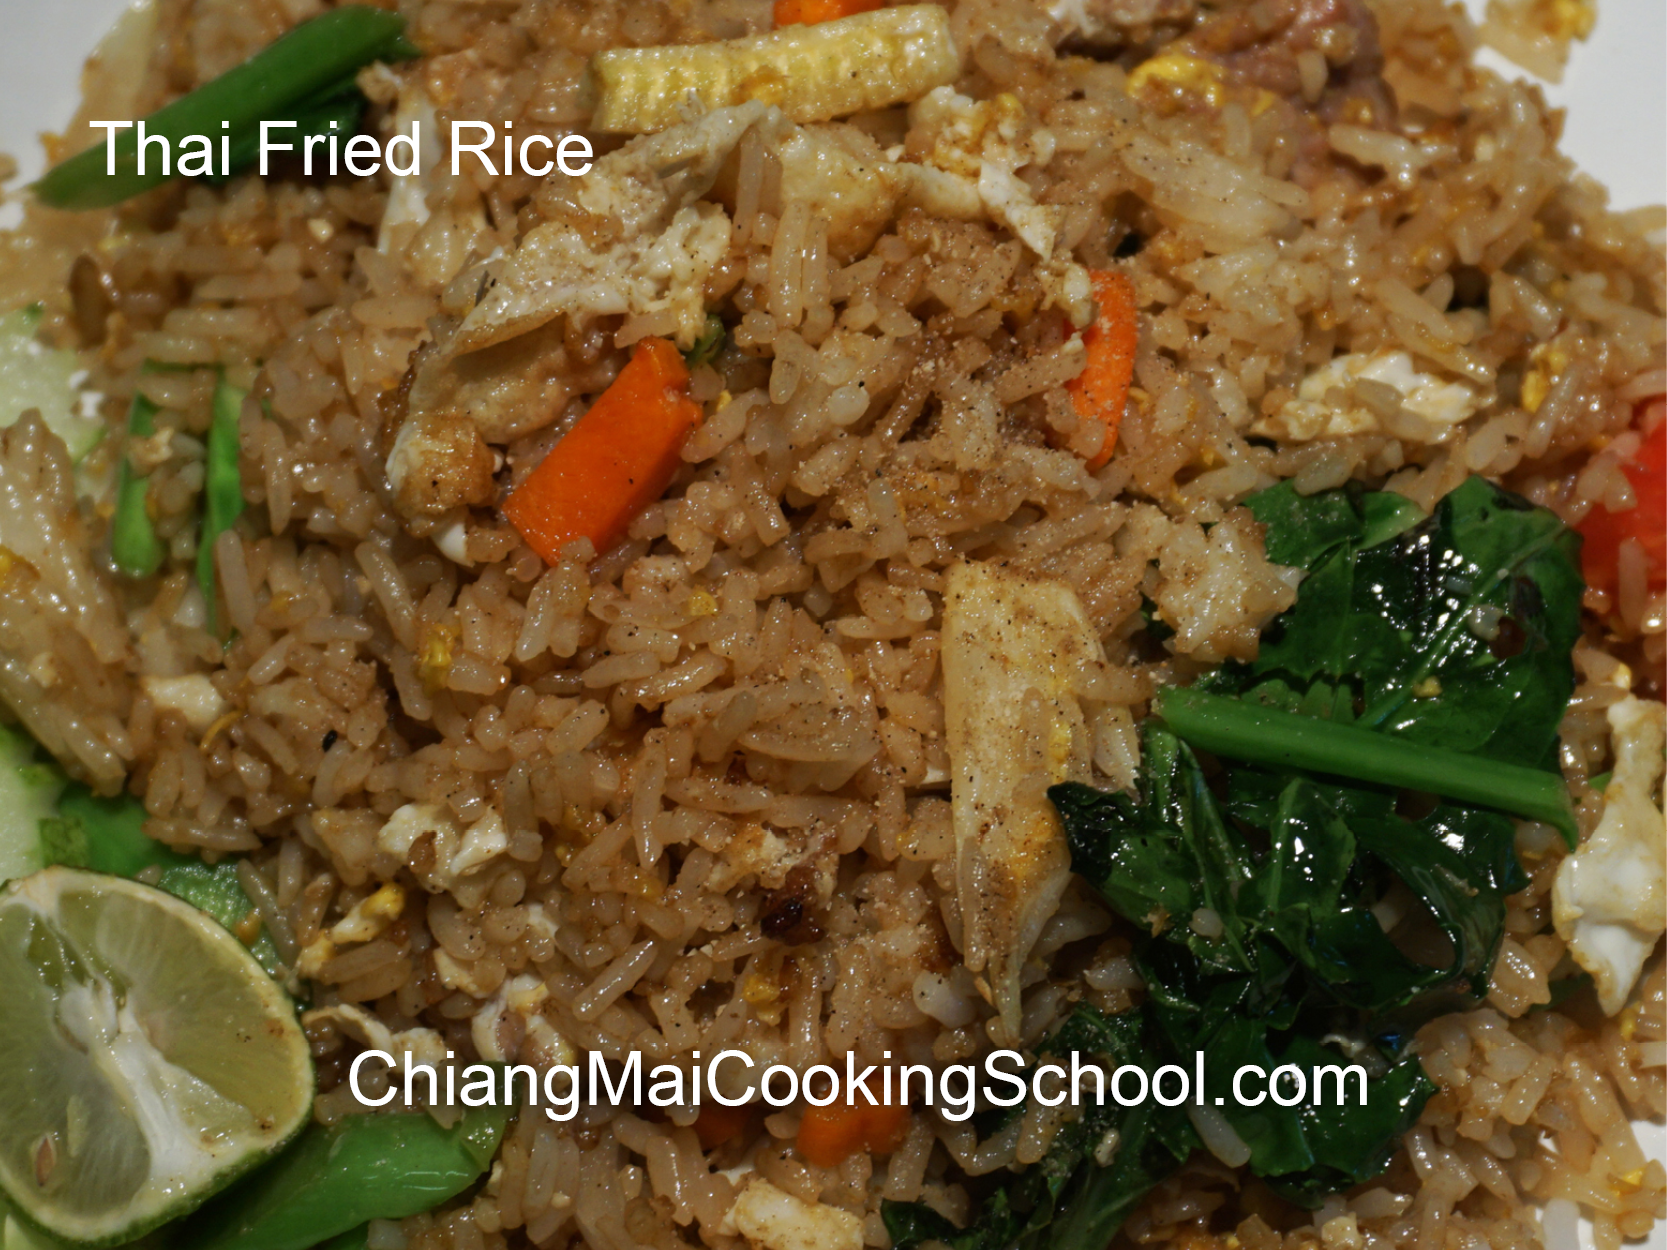 Delicious Fried Rice from Chiang Mai Cooking School